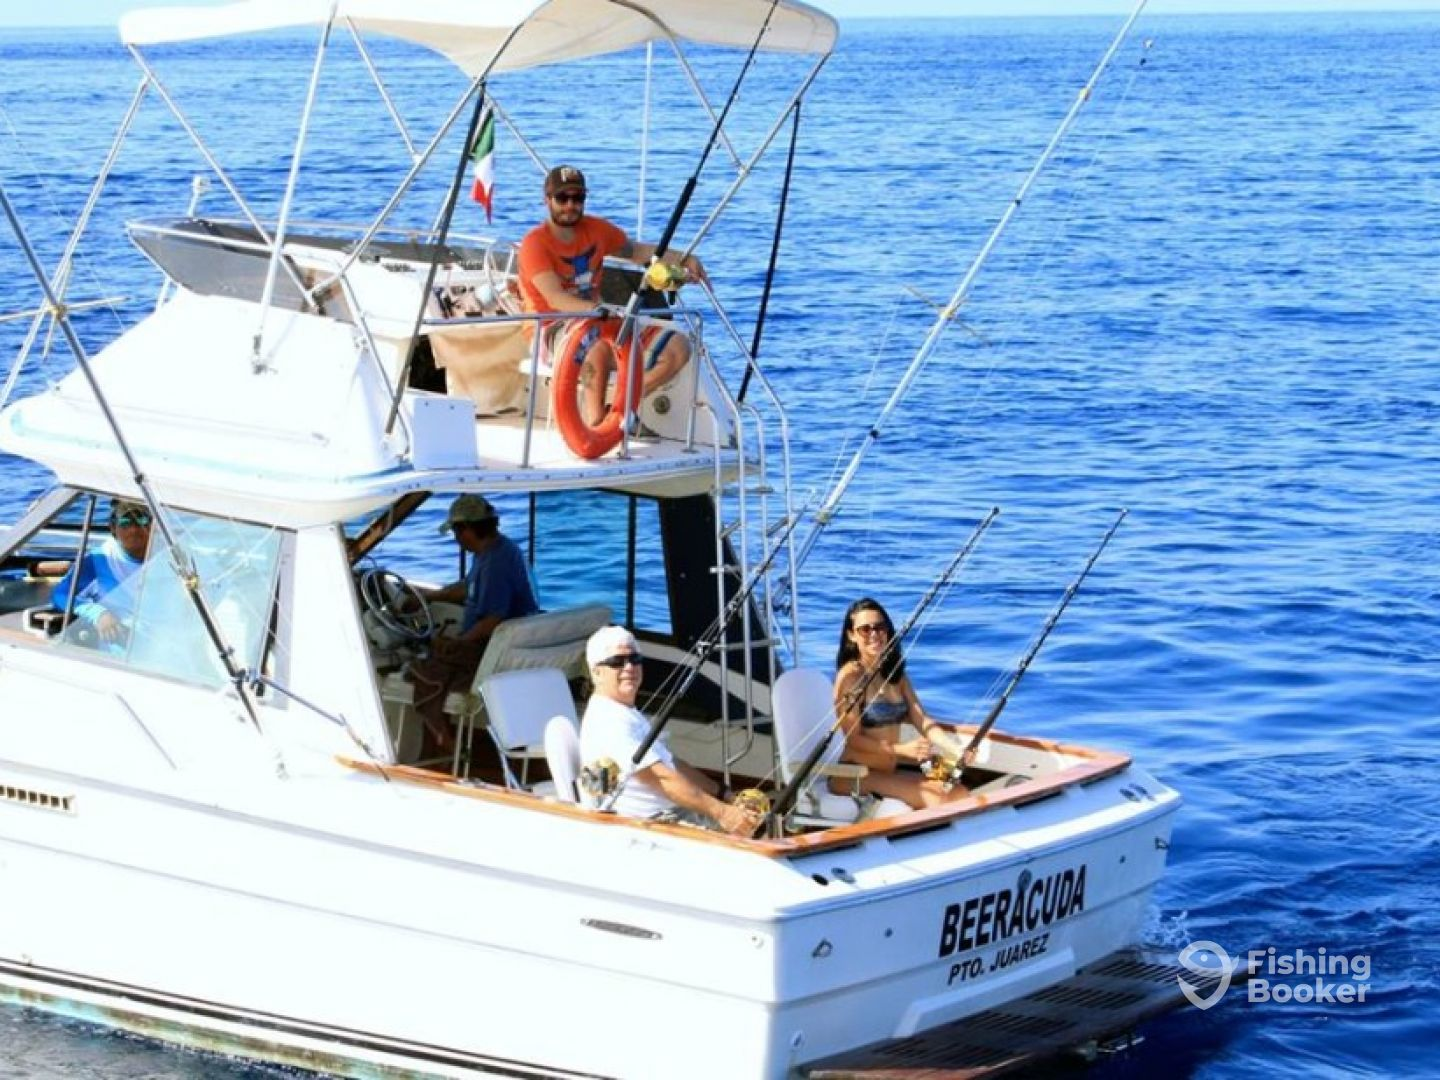 Captain ron s charters cozumel cozumel mexico for Cozumel fishing charters